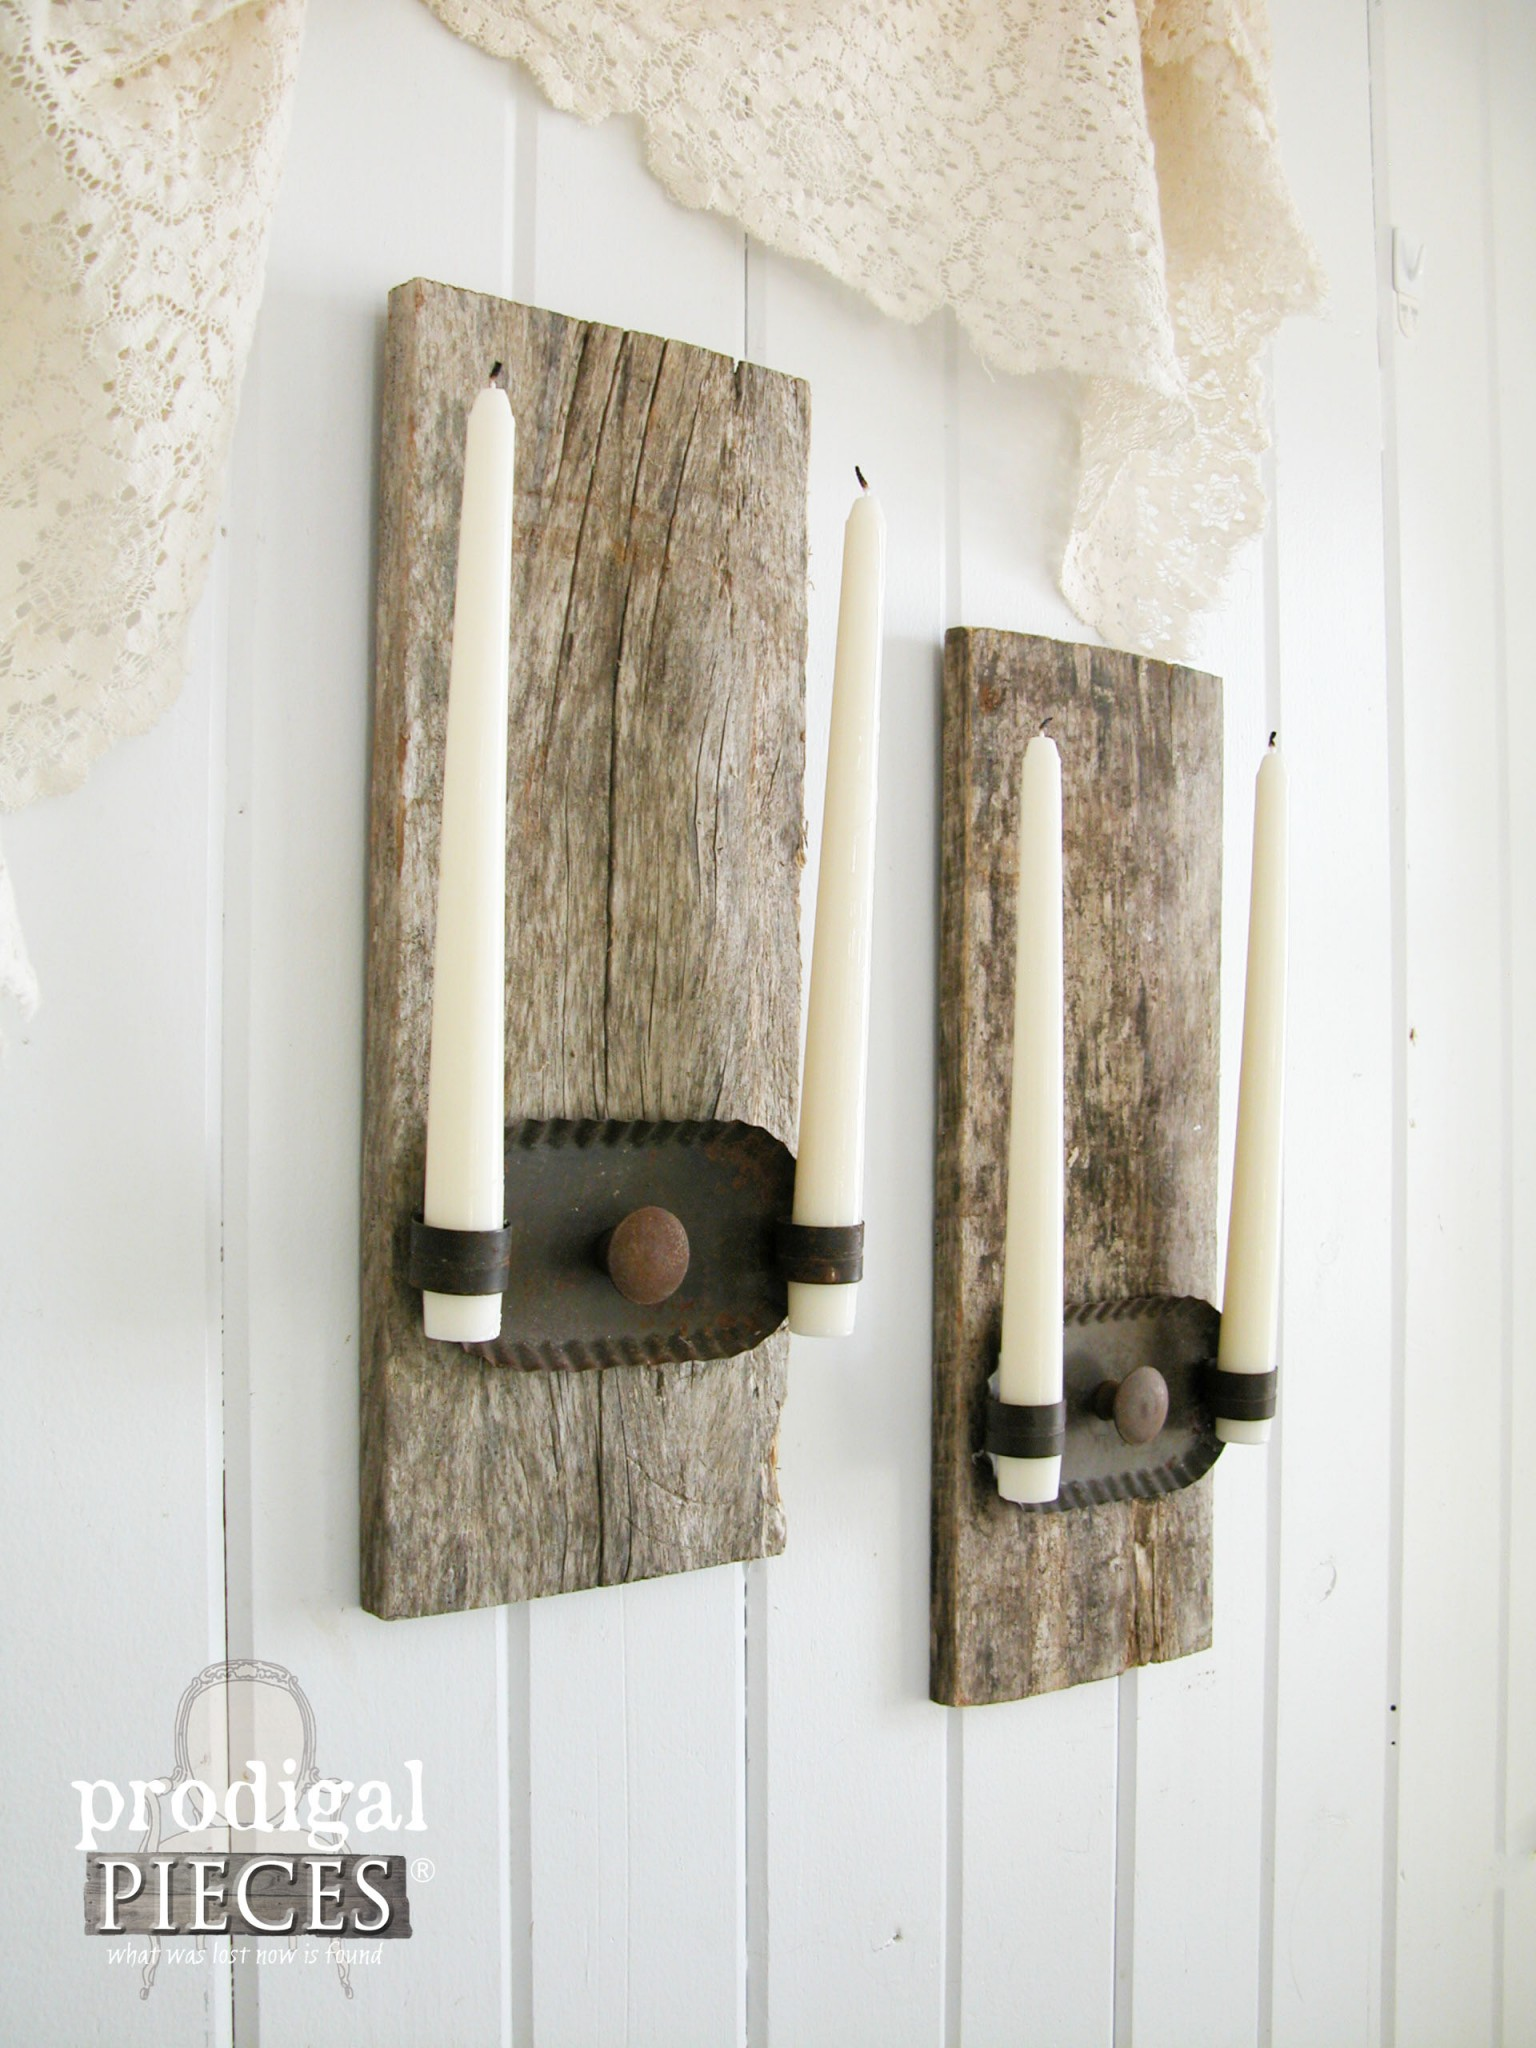 Repurposed Candle Sconces from Barn Wood - Prodigal Pieces